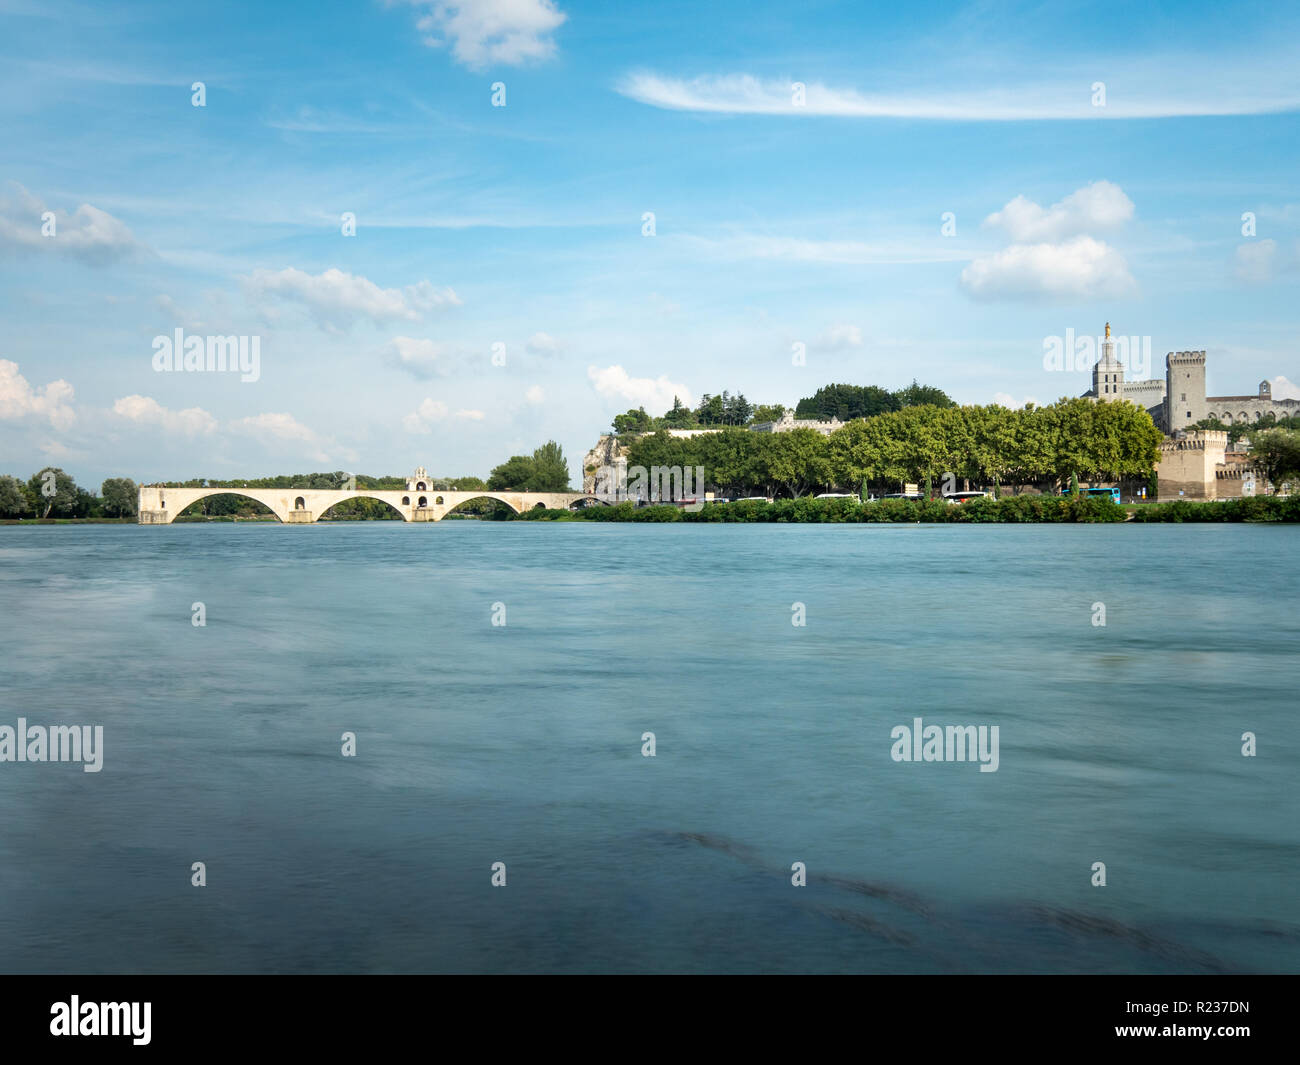 The Avignon bridge and the Papal palace are two touristic attraction built in the medieval time, in Avignon, southern France. The Rhone river cross th Stock Photo